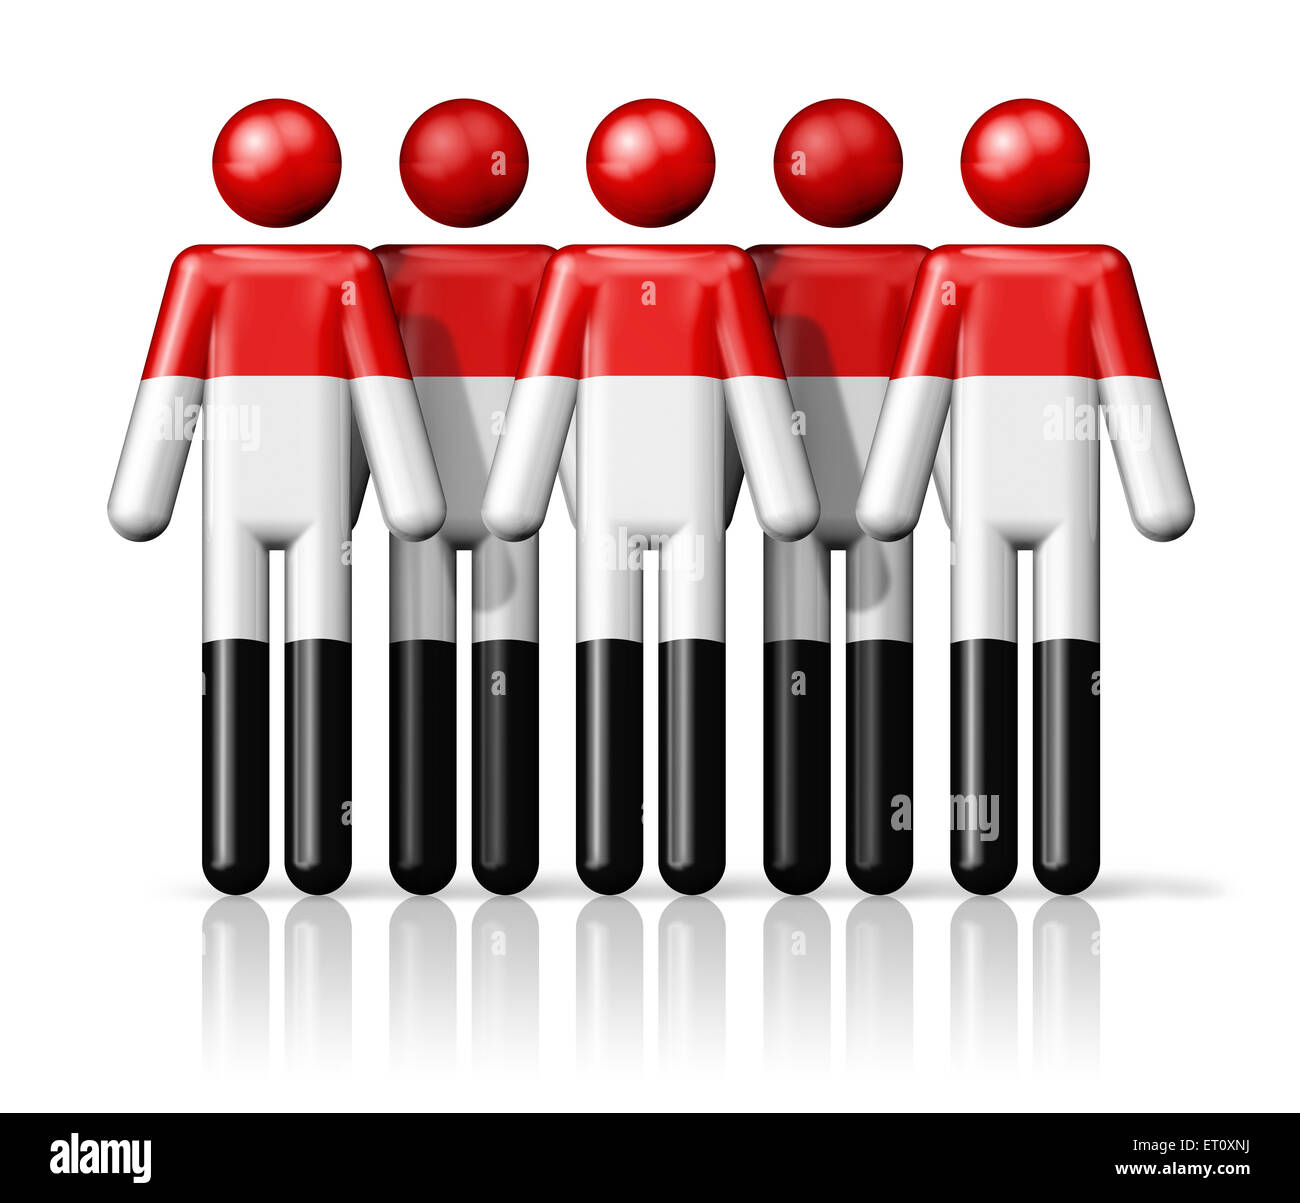 Flag of Yemen on stick figure - national and social community symbol 3D icon - Stock Image